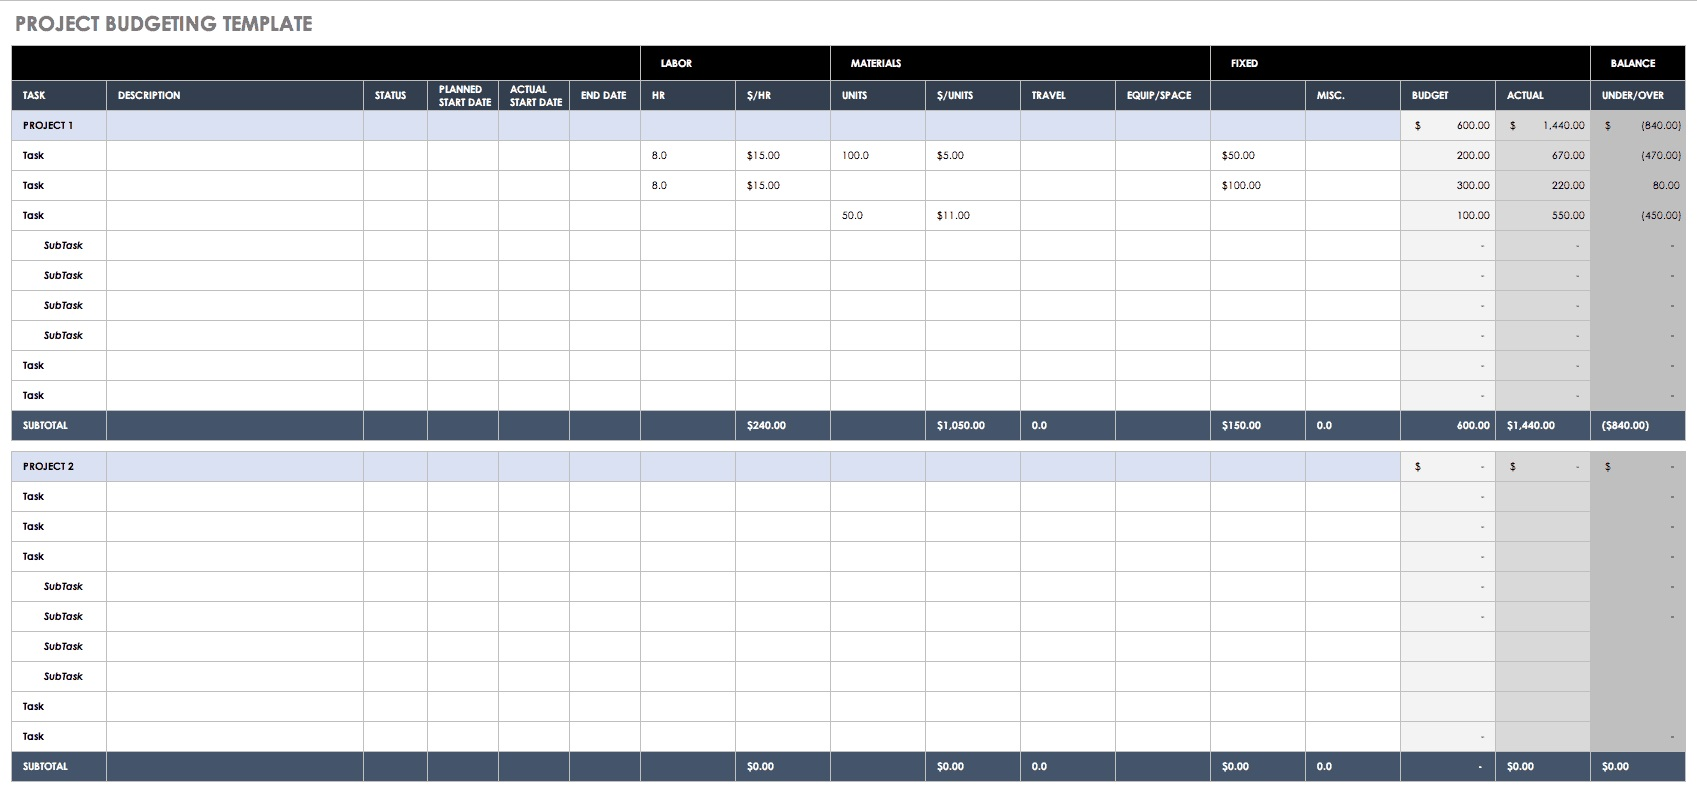 007 Awesome Budget Template In Excel Design  Layout 2013Full